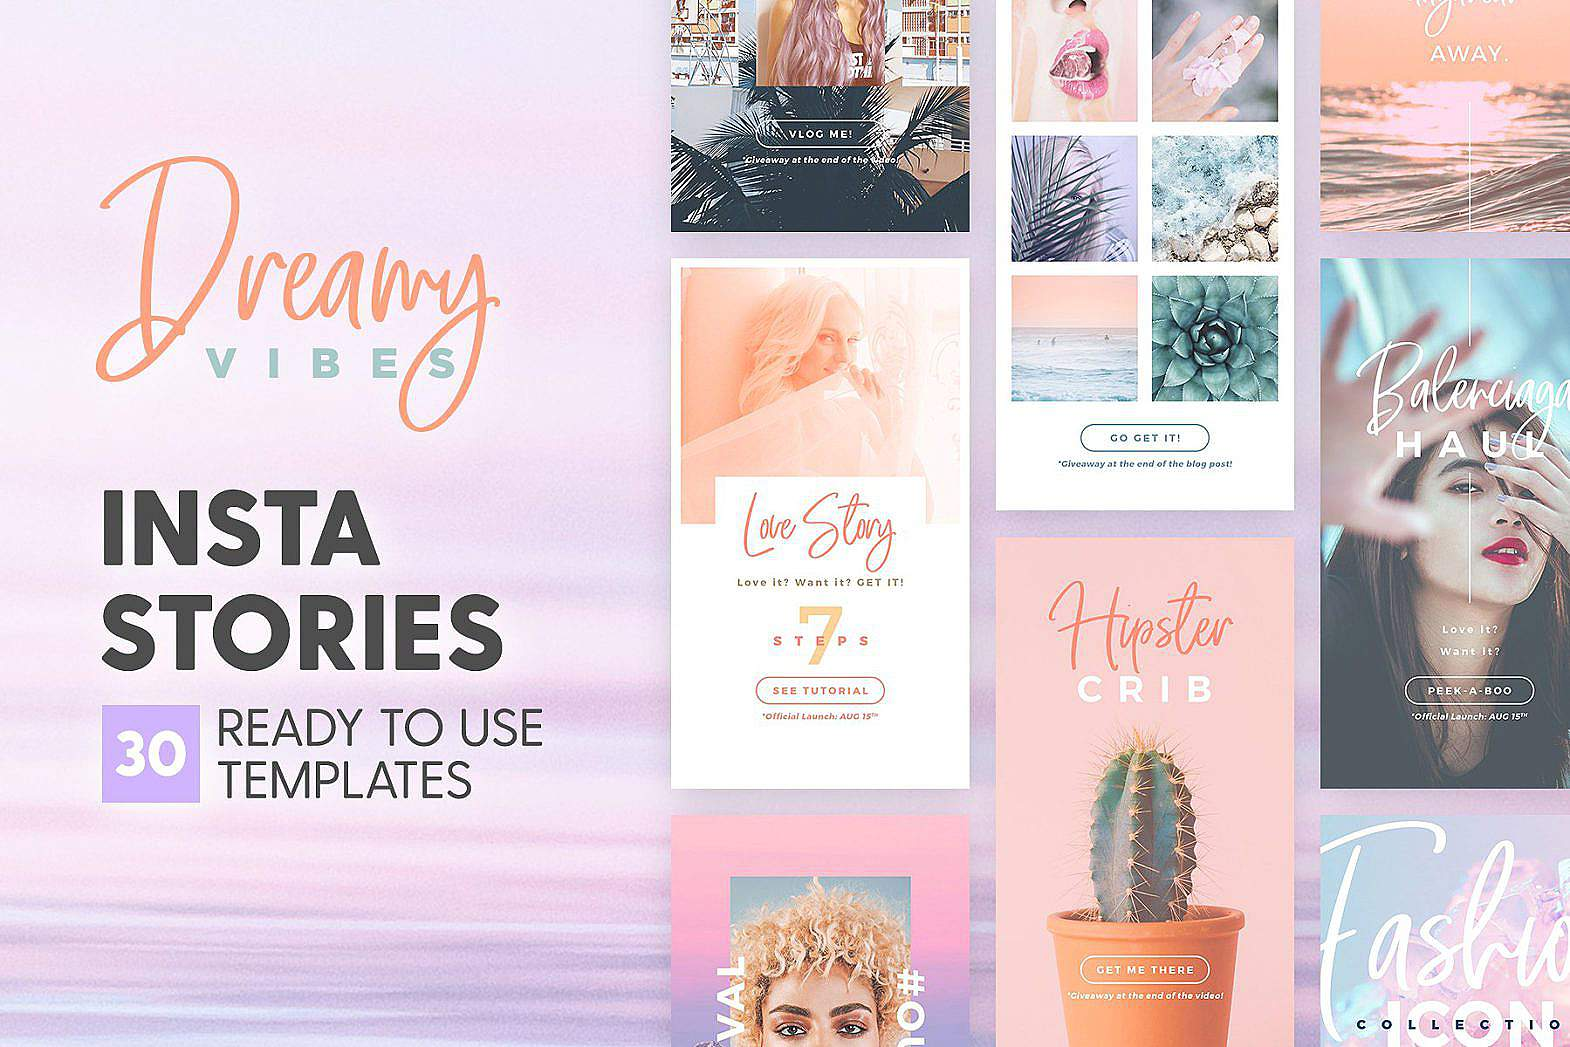 Instagram Stories Templates: Dreamy Vibes Free Stock Photo Download